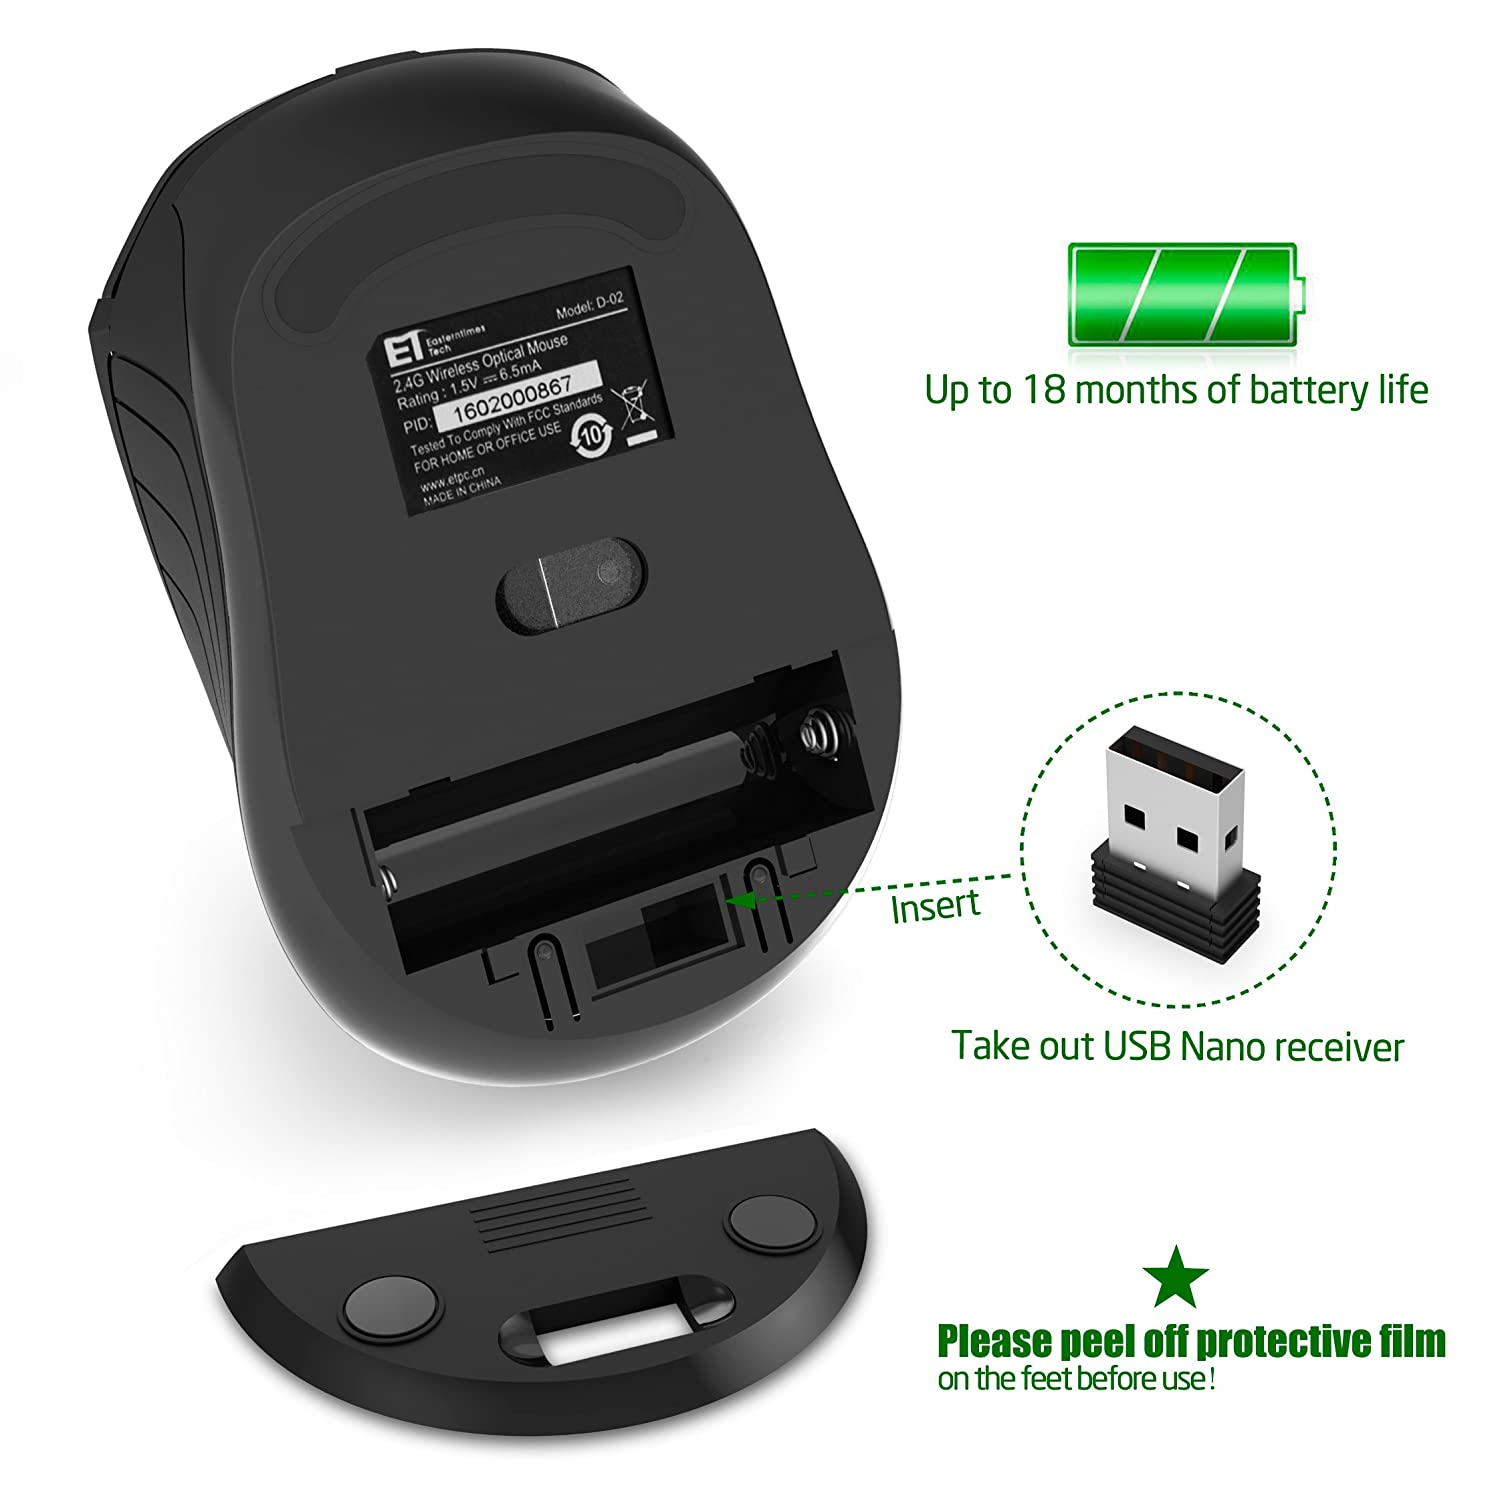 ENGAGE B319 WIRELESS MOUSE DRIVERS FOR WINDOWS 8